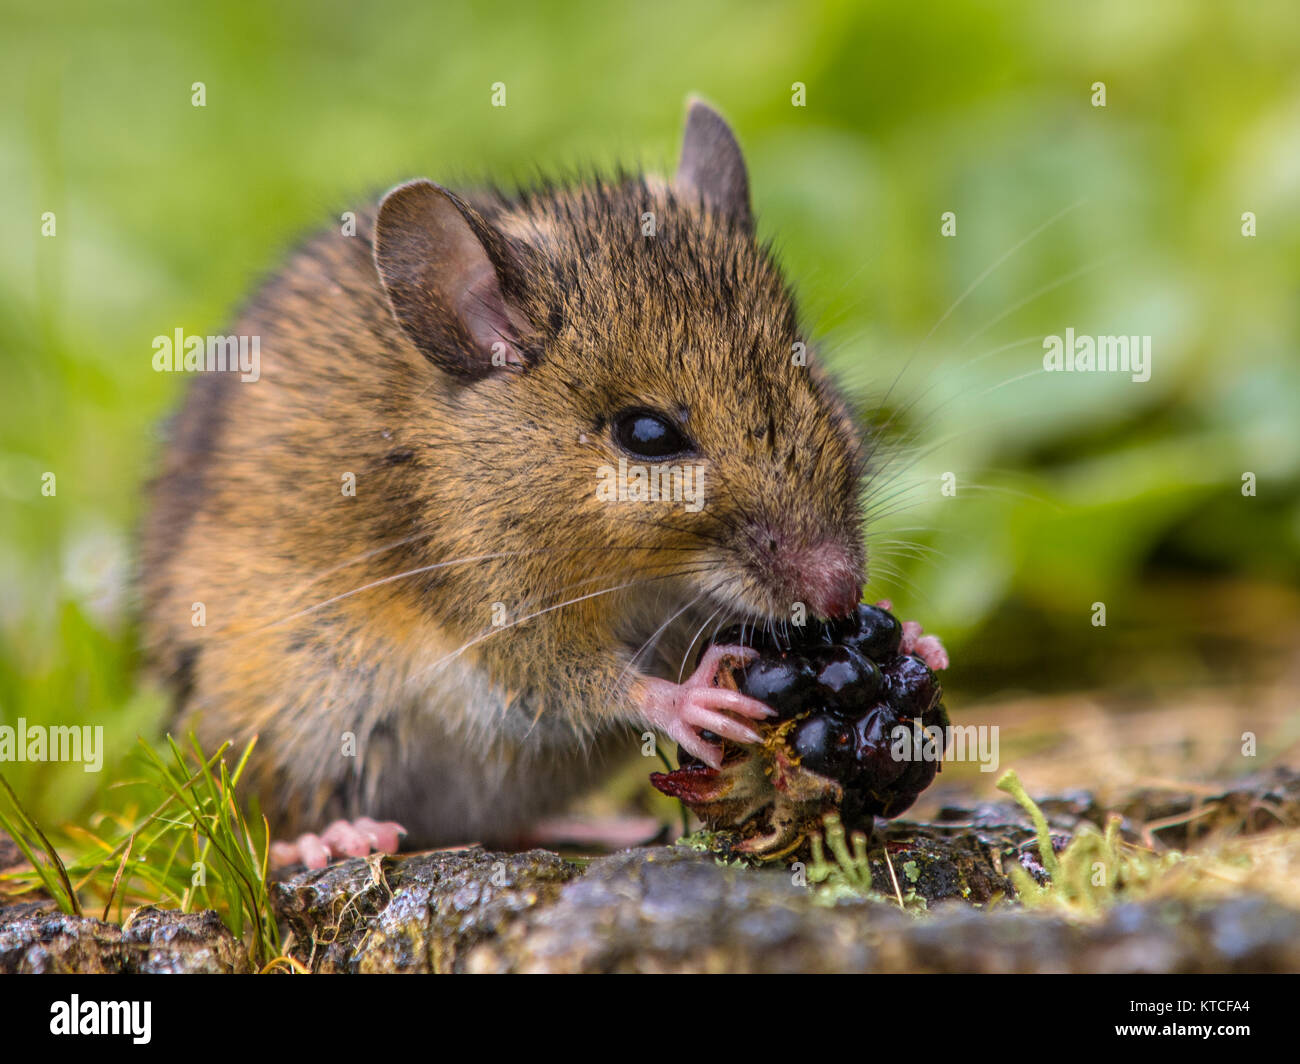 Wild wood mouse eating raspberry - Stock Image